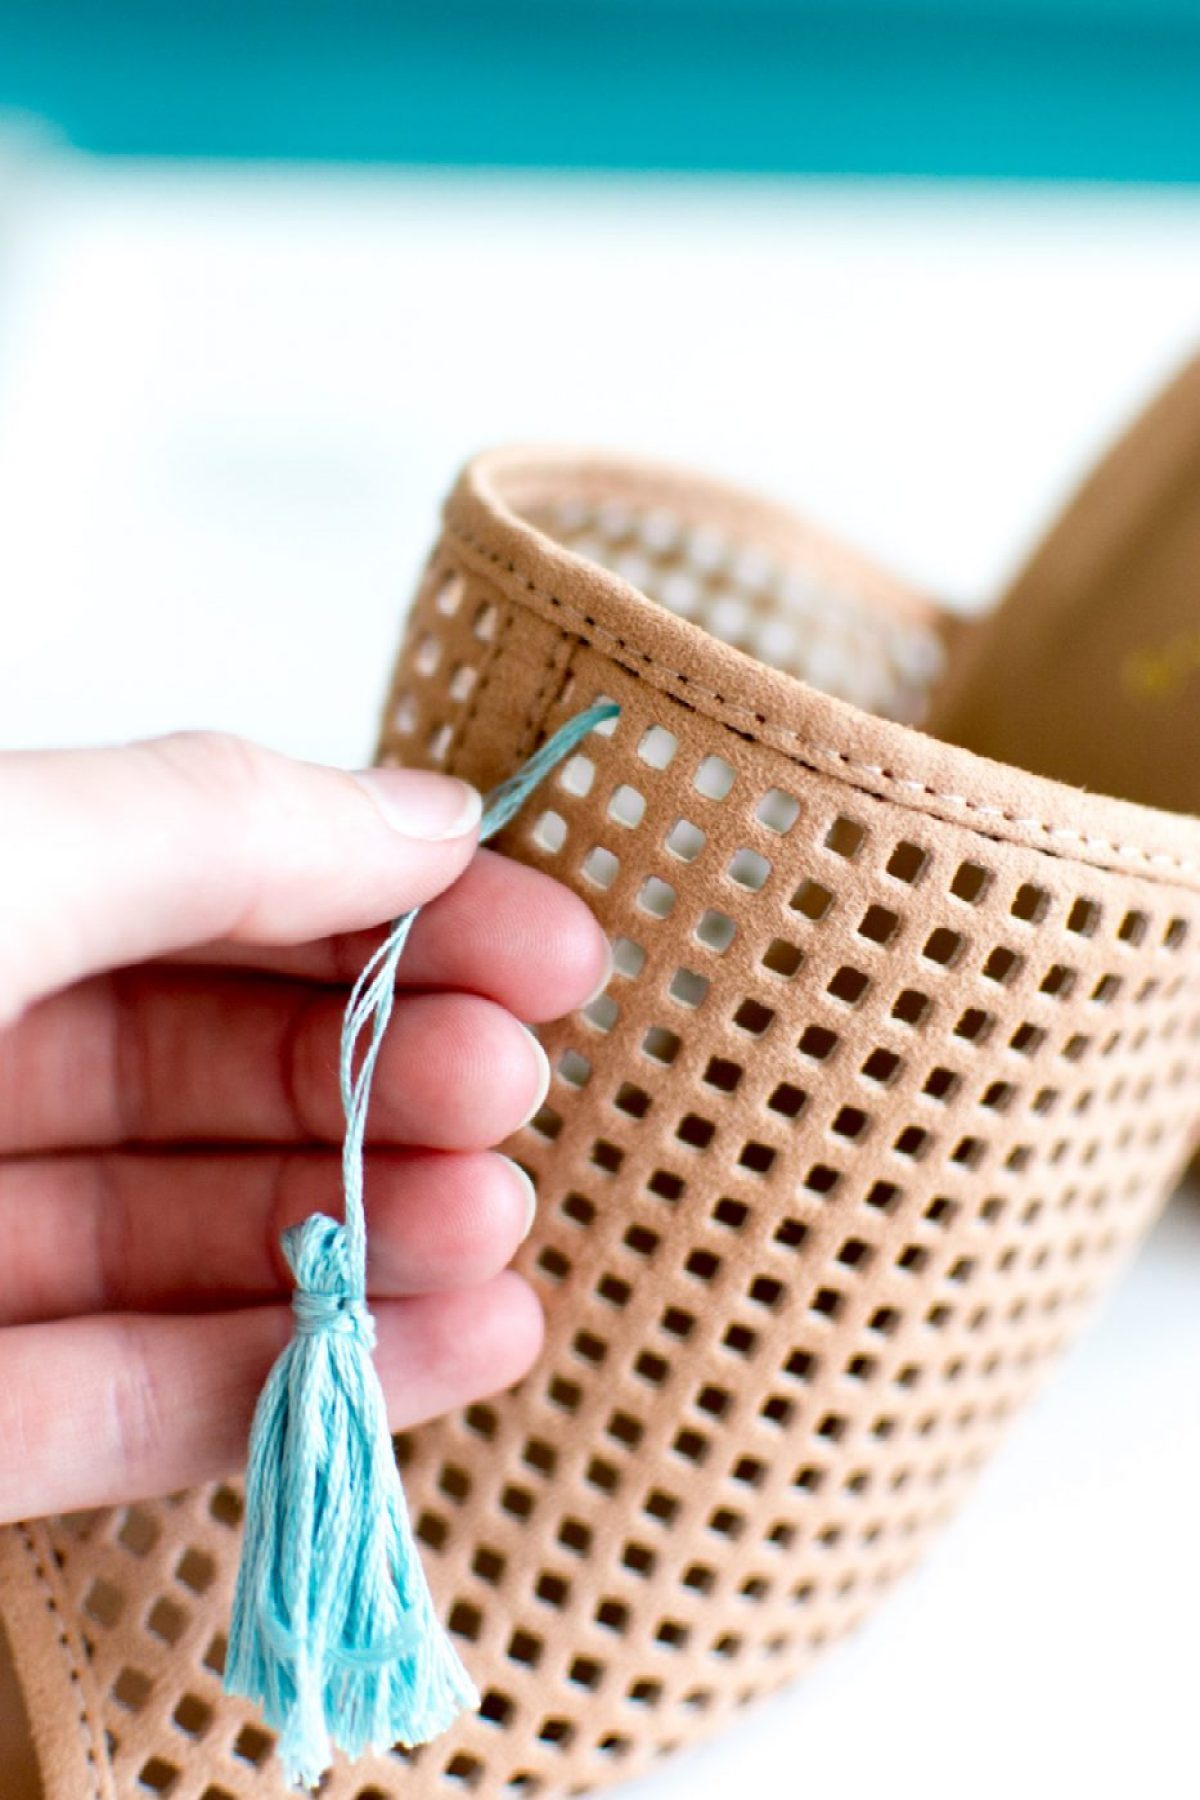 Putting tassels on shoes - Sweet Teal